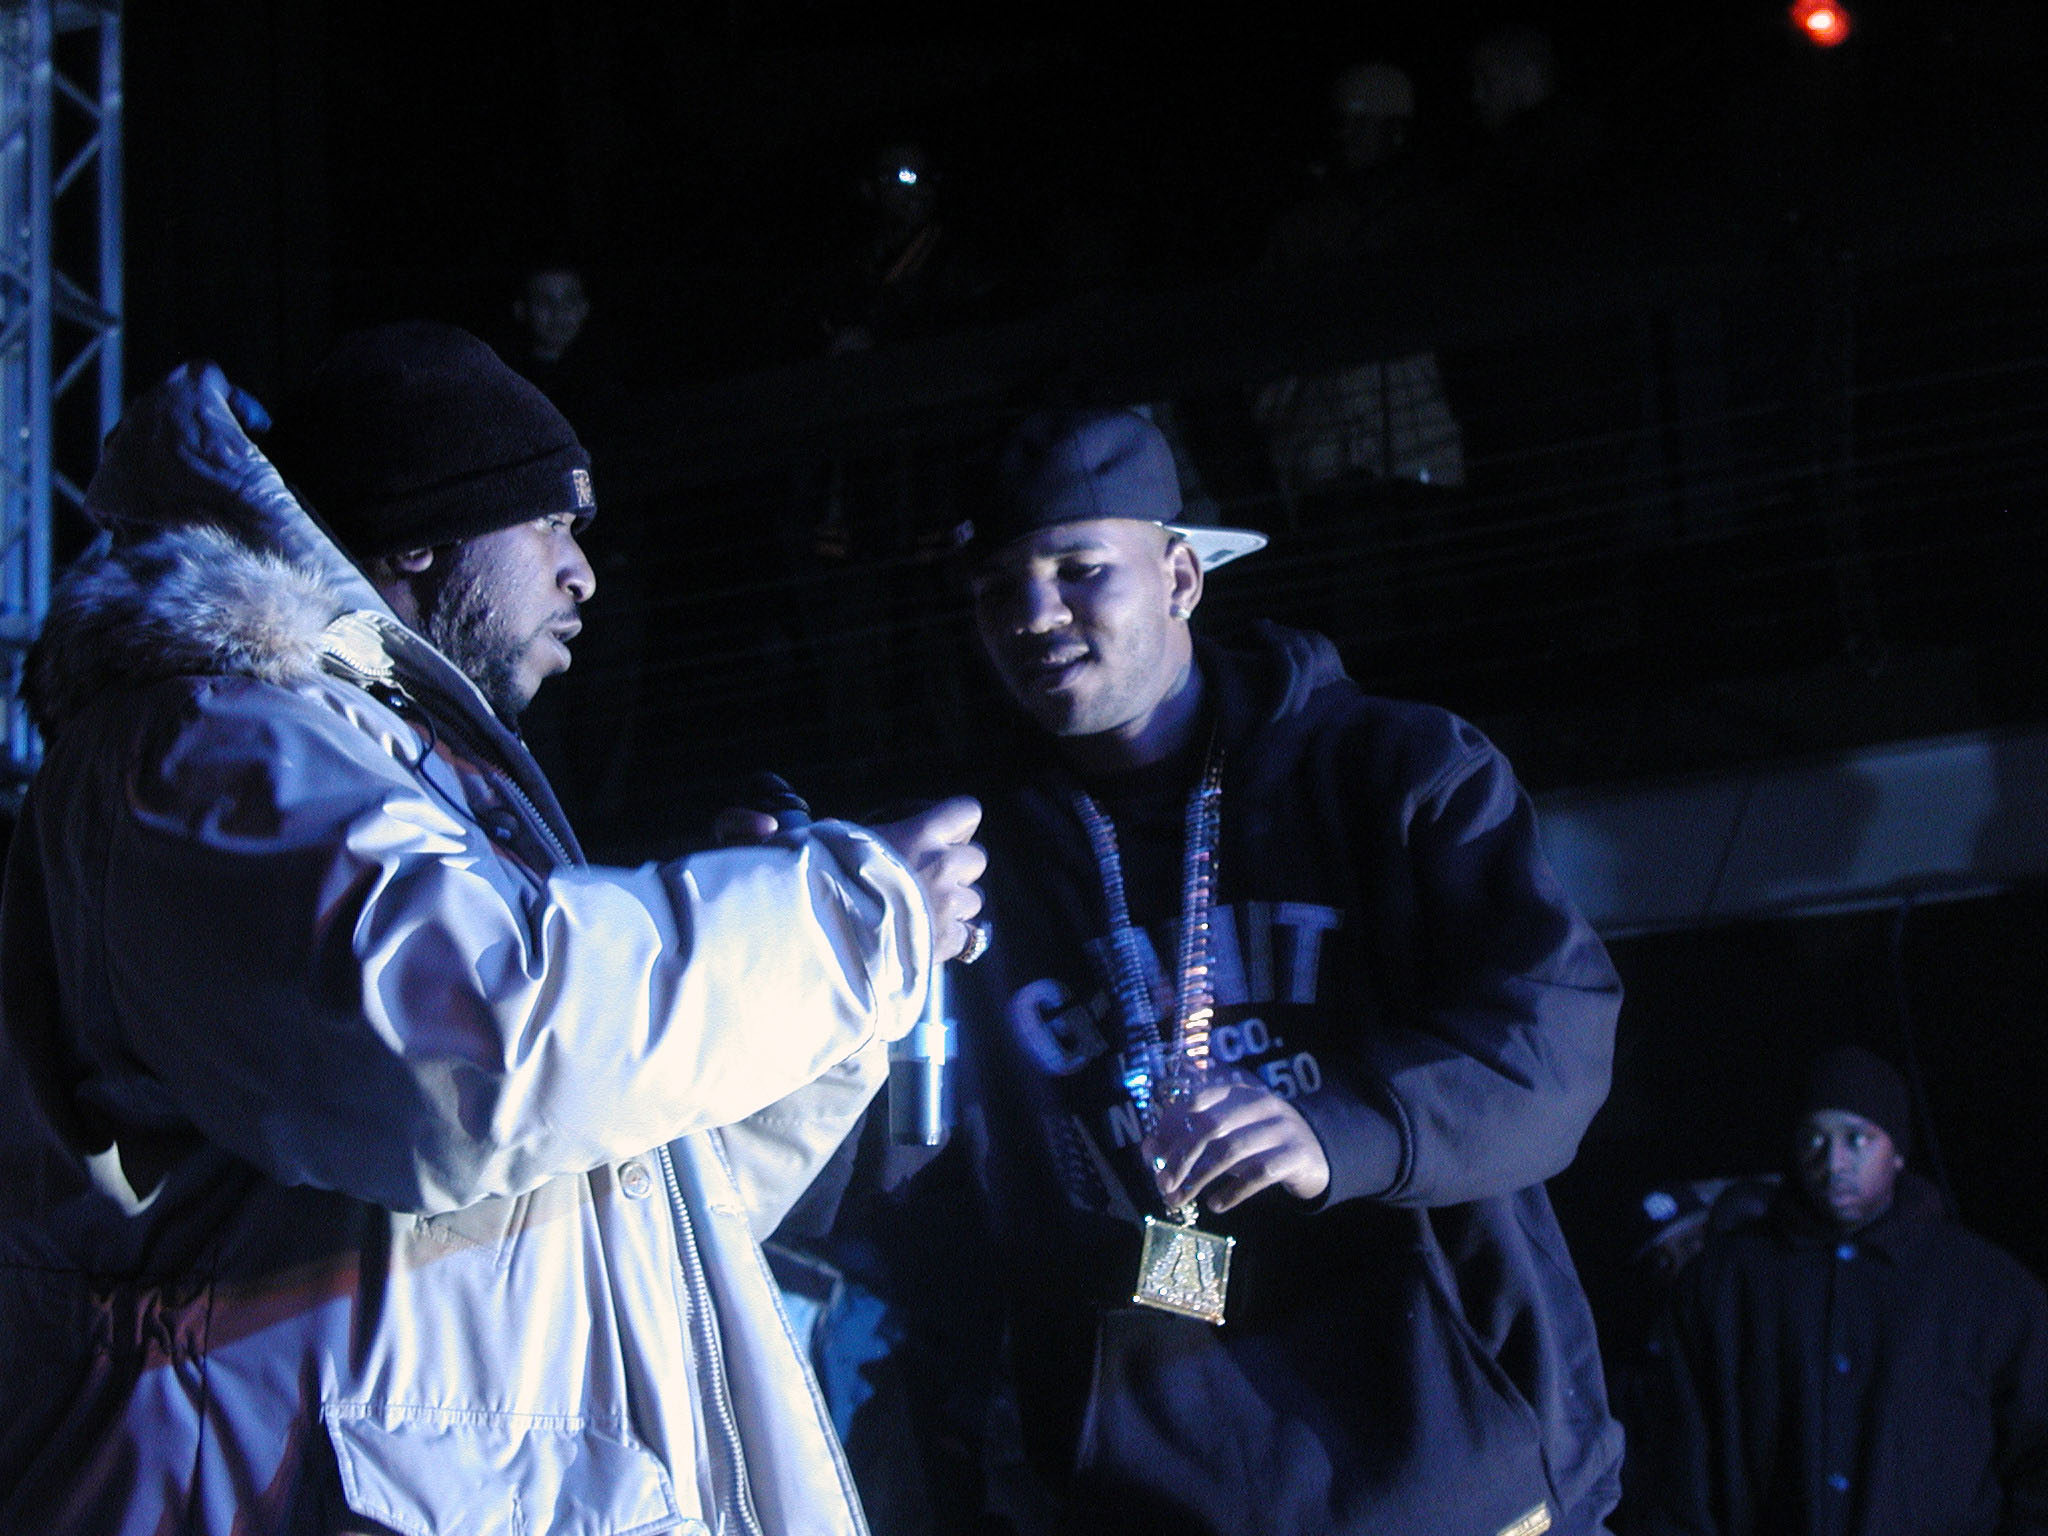 Game (right) with Kool G Rap (left) in New York City, November 2004